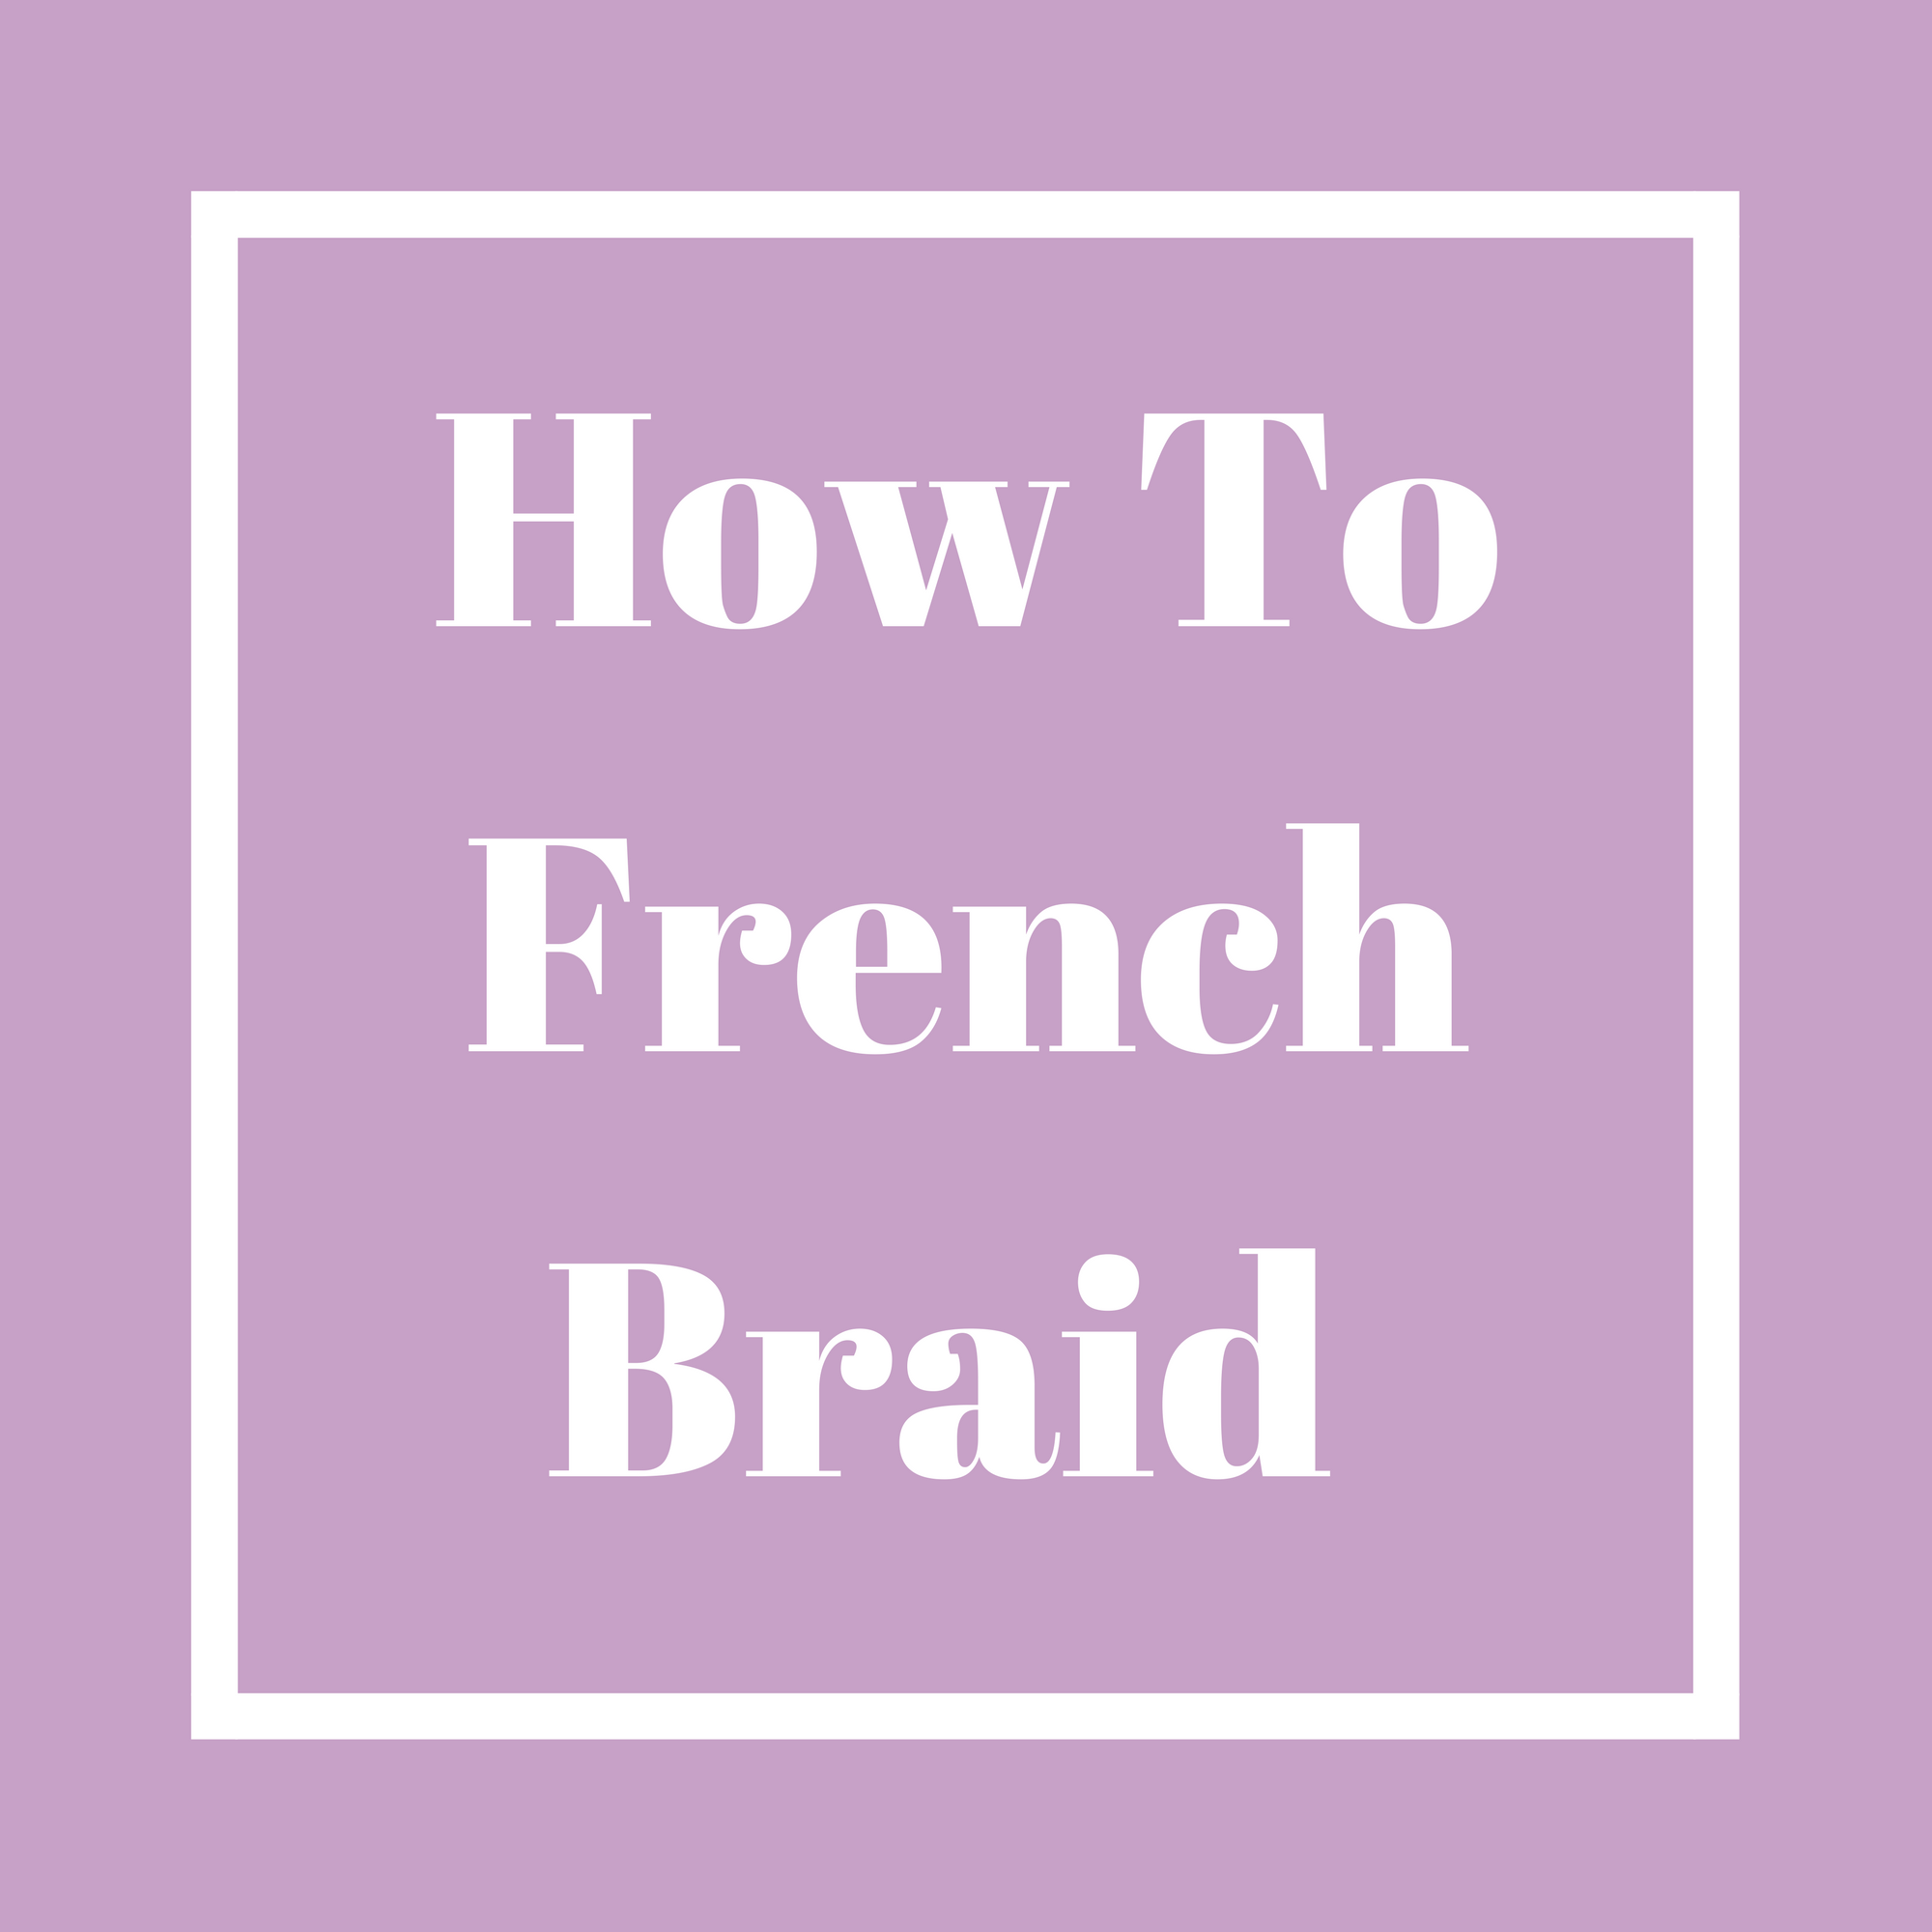 CUTE HAIR ALERT! HOW TO FRENCH BRAID